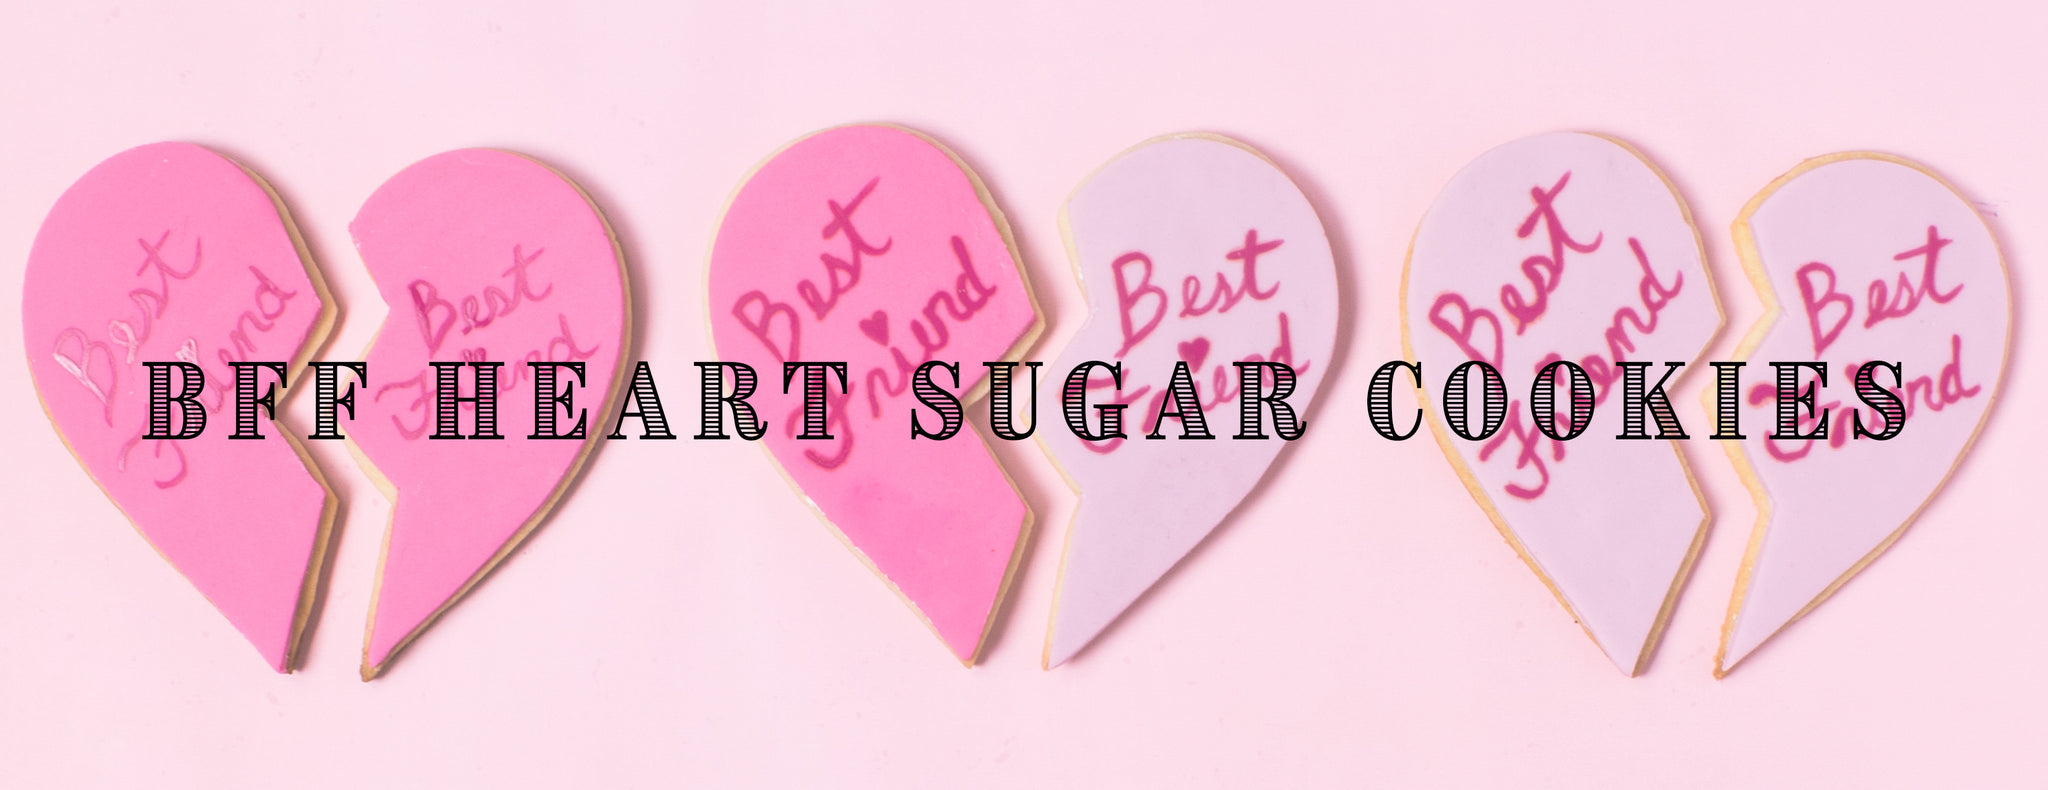 PARTY ET CIE BAKES - BFF HEART SUGAR COOKIES